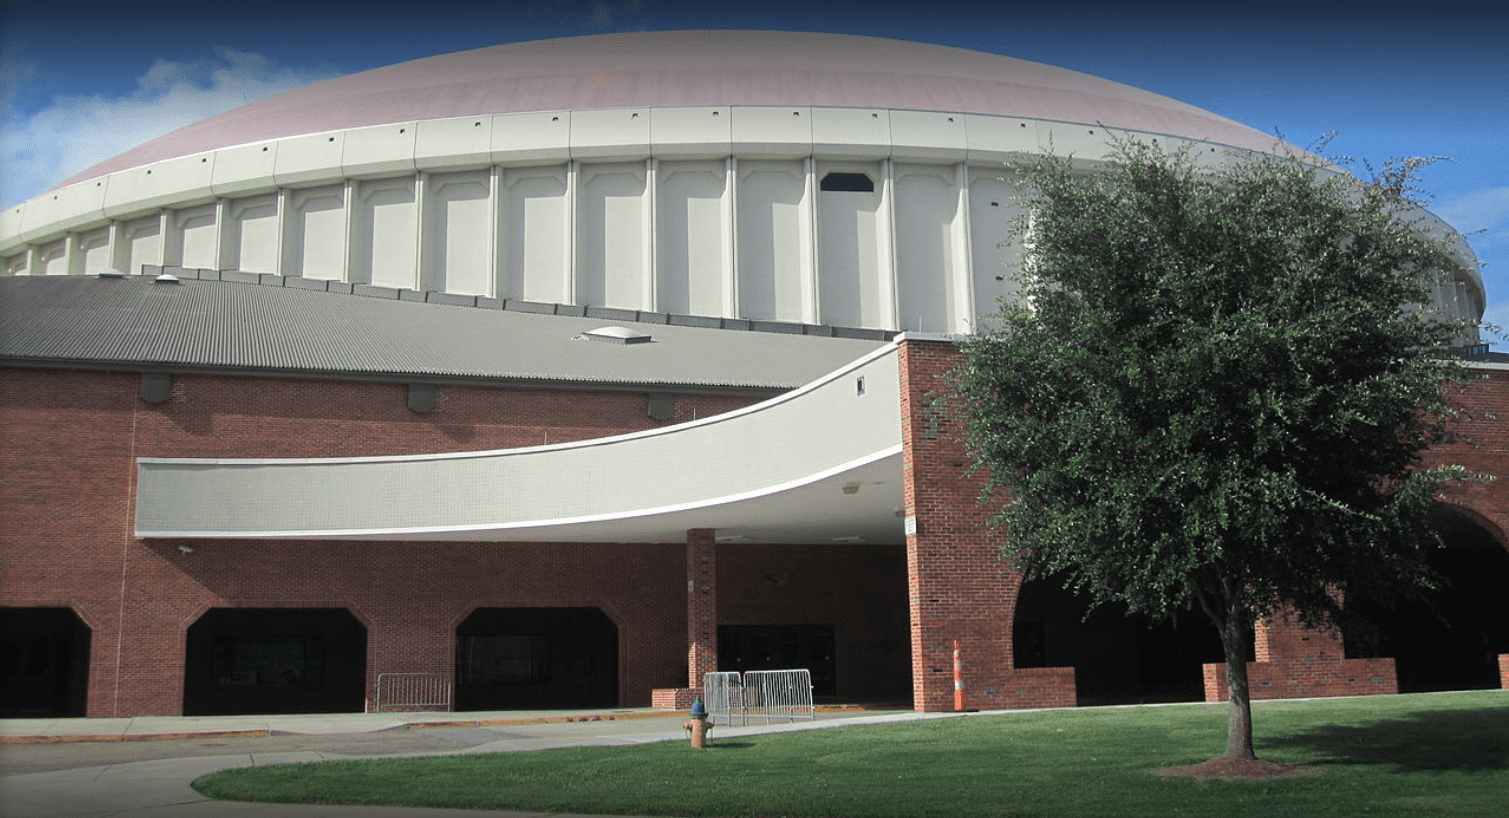 The Cajundome will host LHSAA boys basketball semifinals in March. The Cajundome will host four games per day between March 8-10.